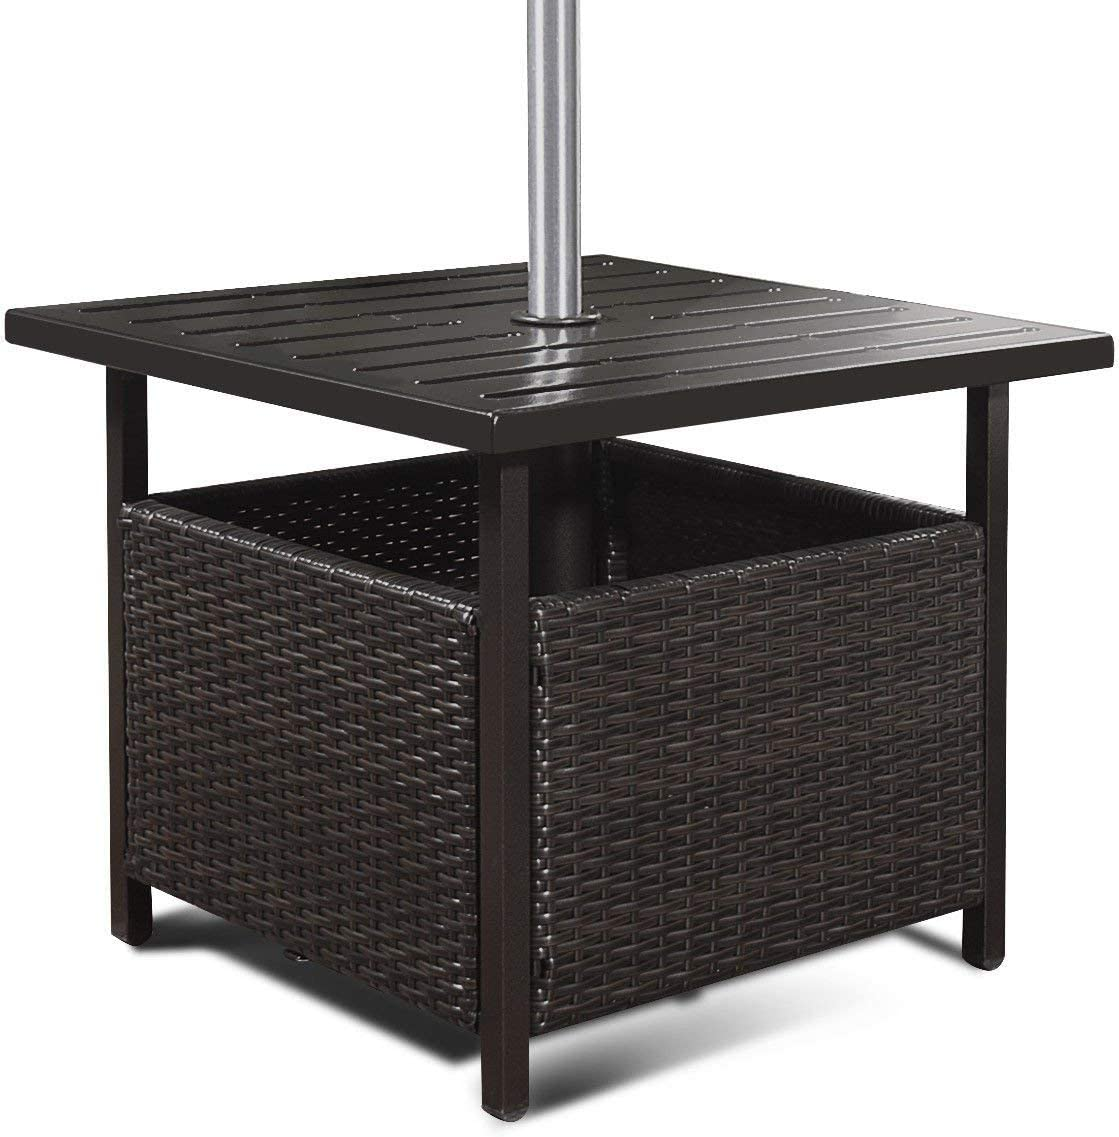 ReunionG Patio Umbrella Side Table, Rattan Wicker Stand Table with Umbrella Hole Steel, Suitable for Outdoor, Garden Pool Furniture, Bistro Table